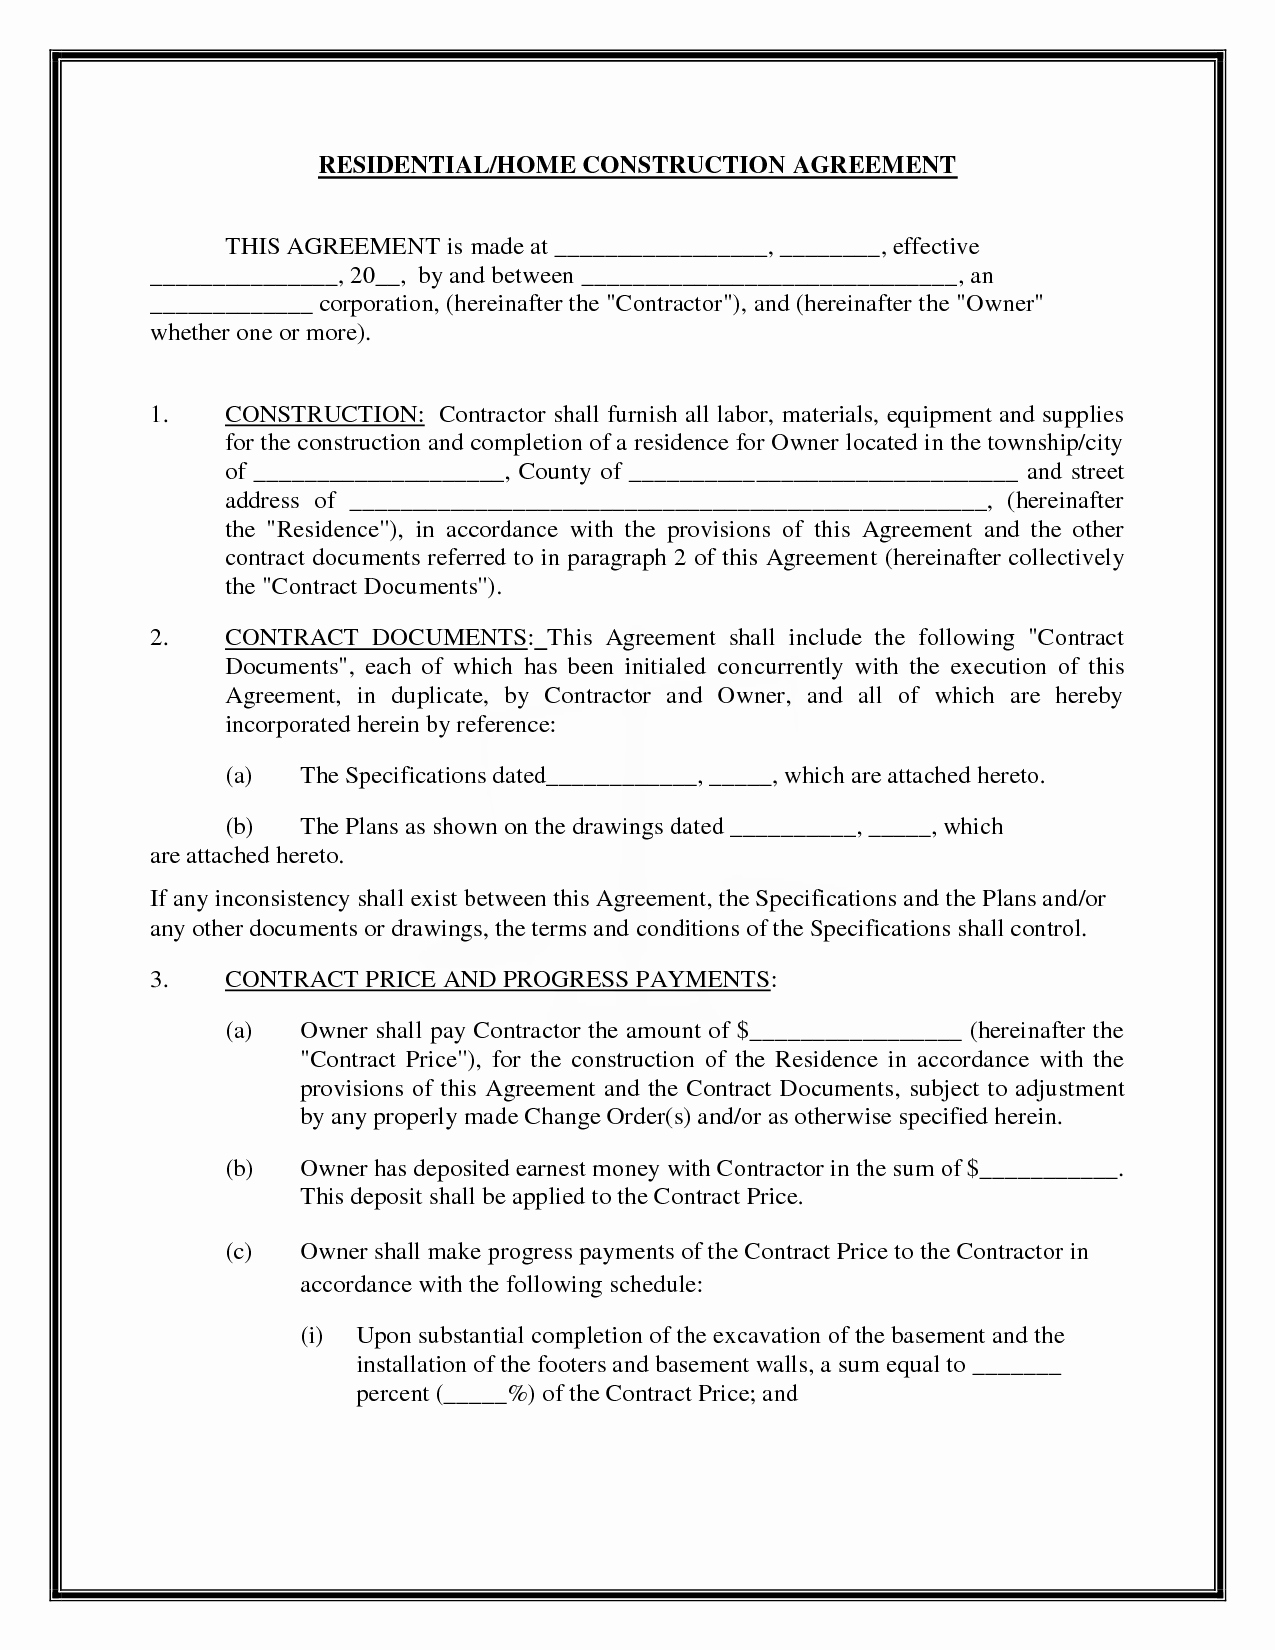 Construction Contract Template Free Luxury Residential Home Construction Agreement by Readybuiltforms